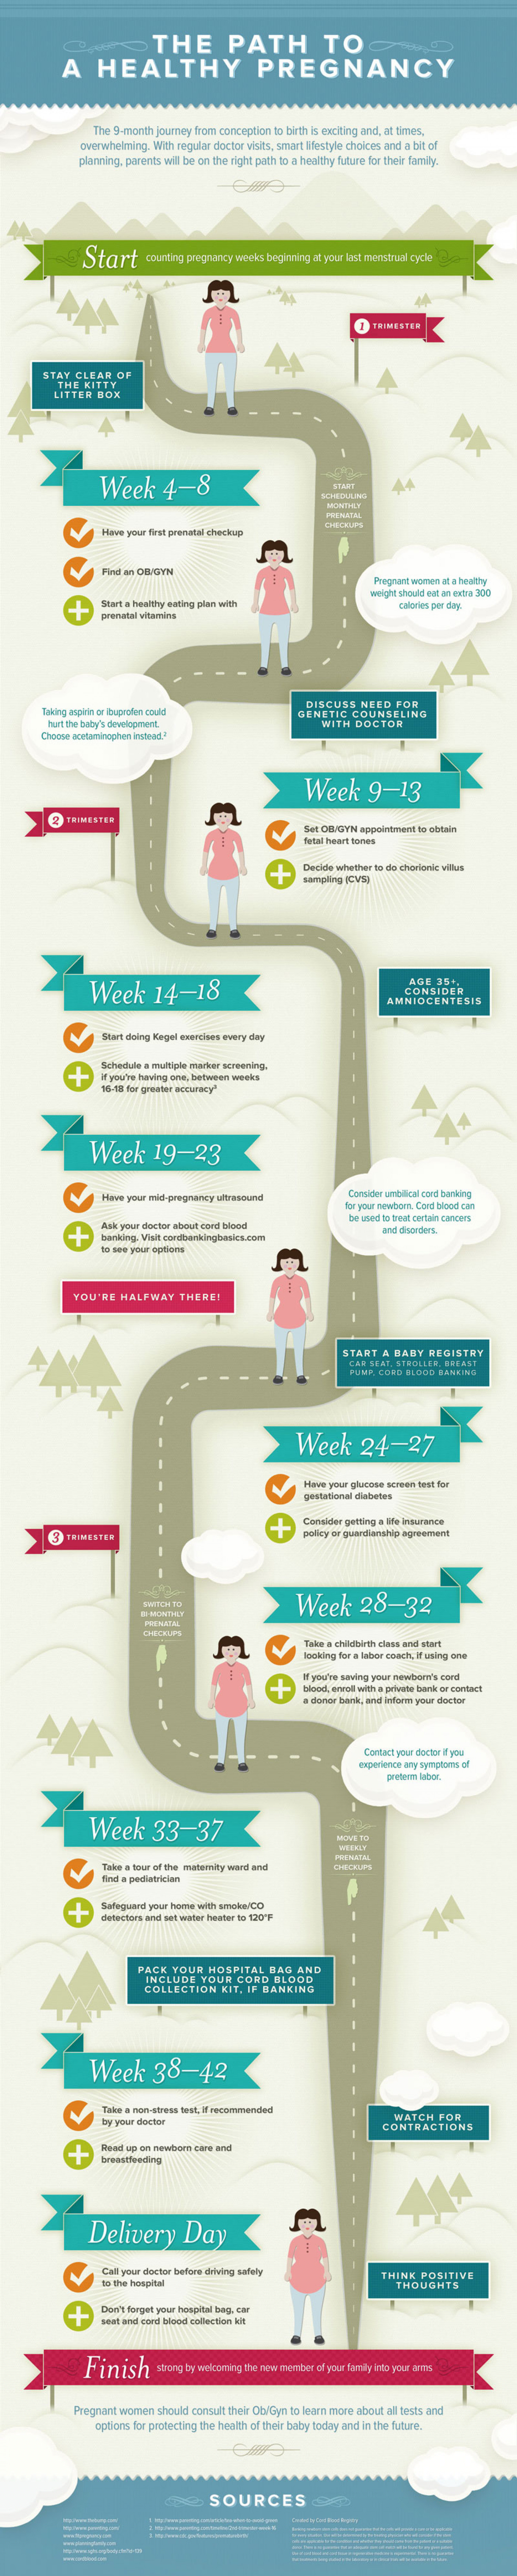 Stages of Pregnancy Infographic